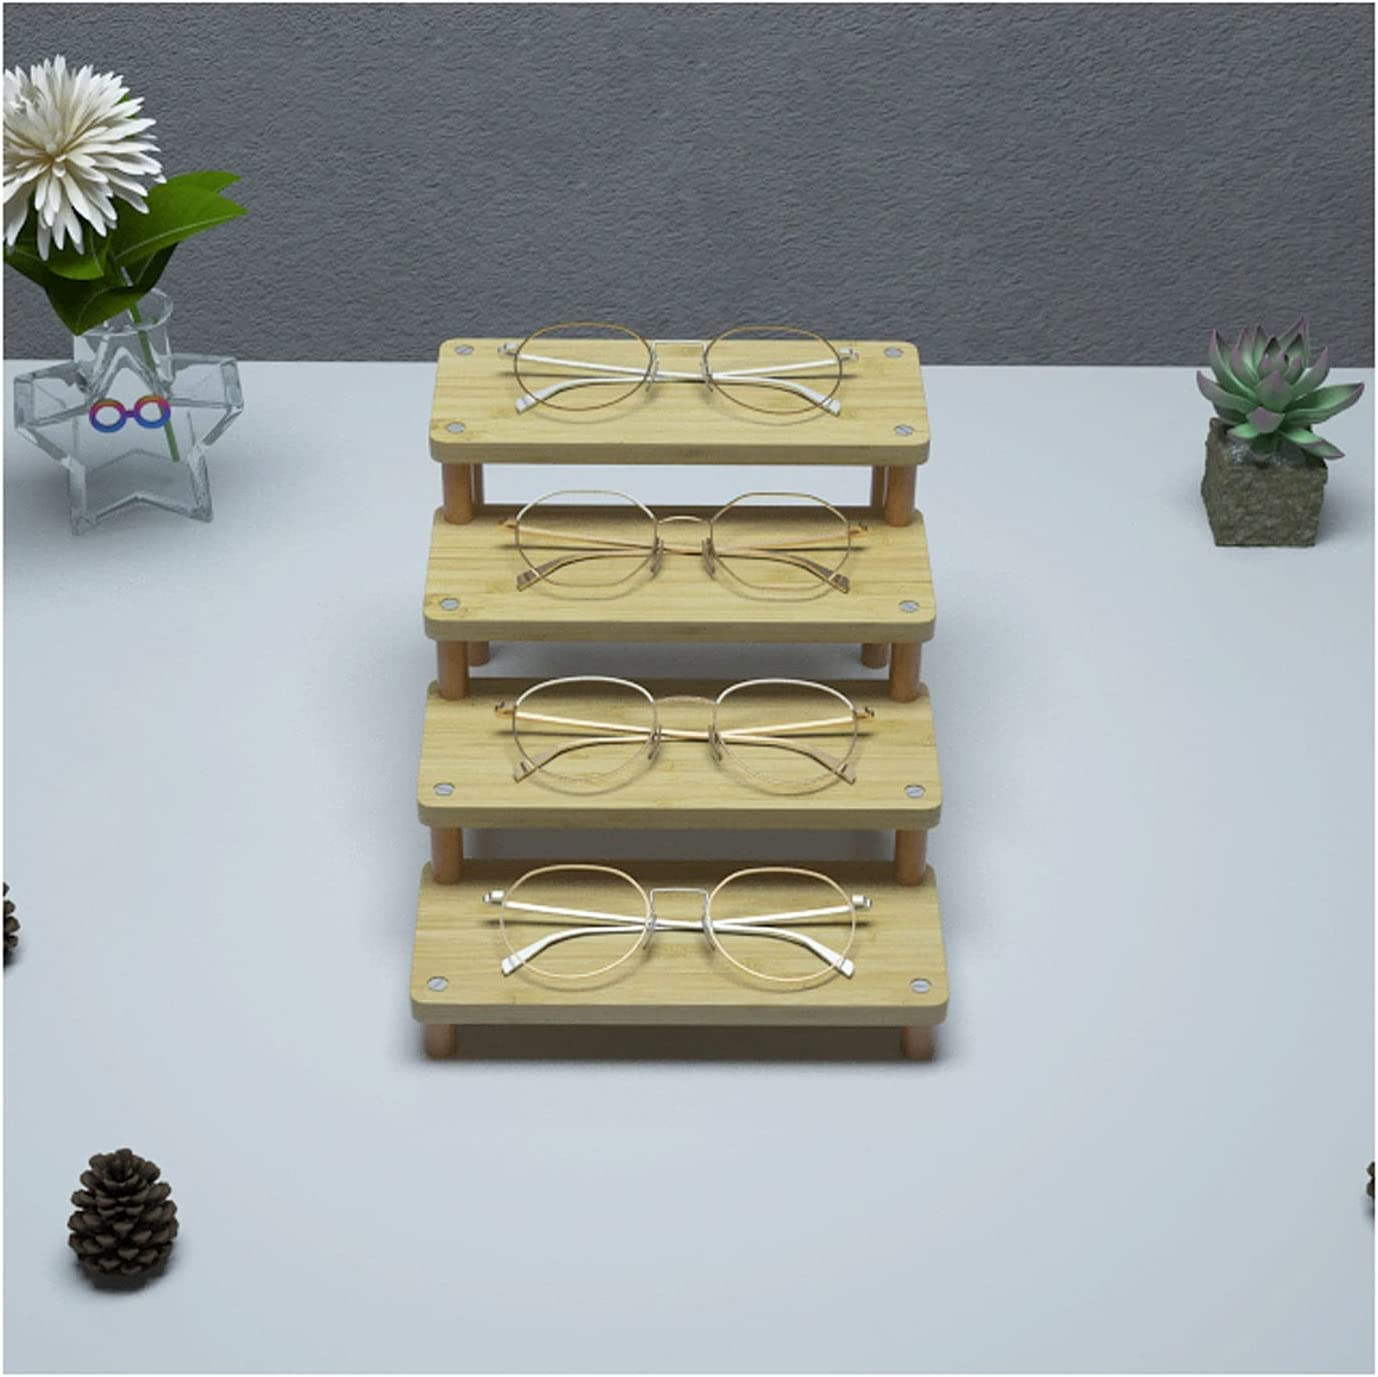 DALIZHAI777 A surprise price is realized Sunglasses Organizer Wooden Frame Stand New sales Eyeglasses